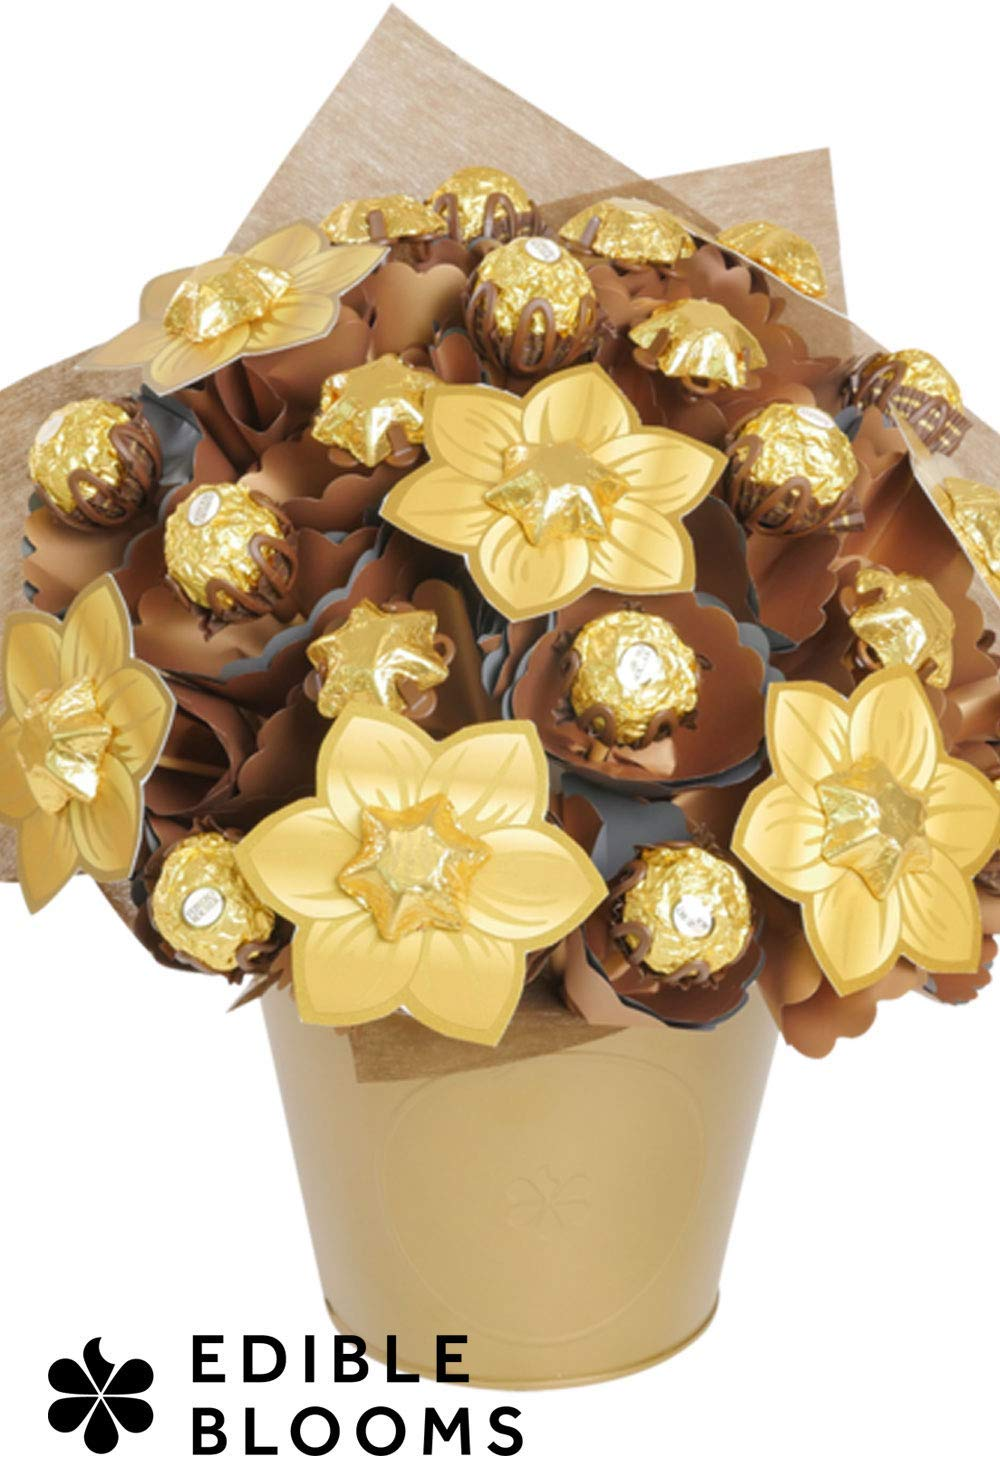 Chocolate Bouquet Gifts - Chocolate Gift Set